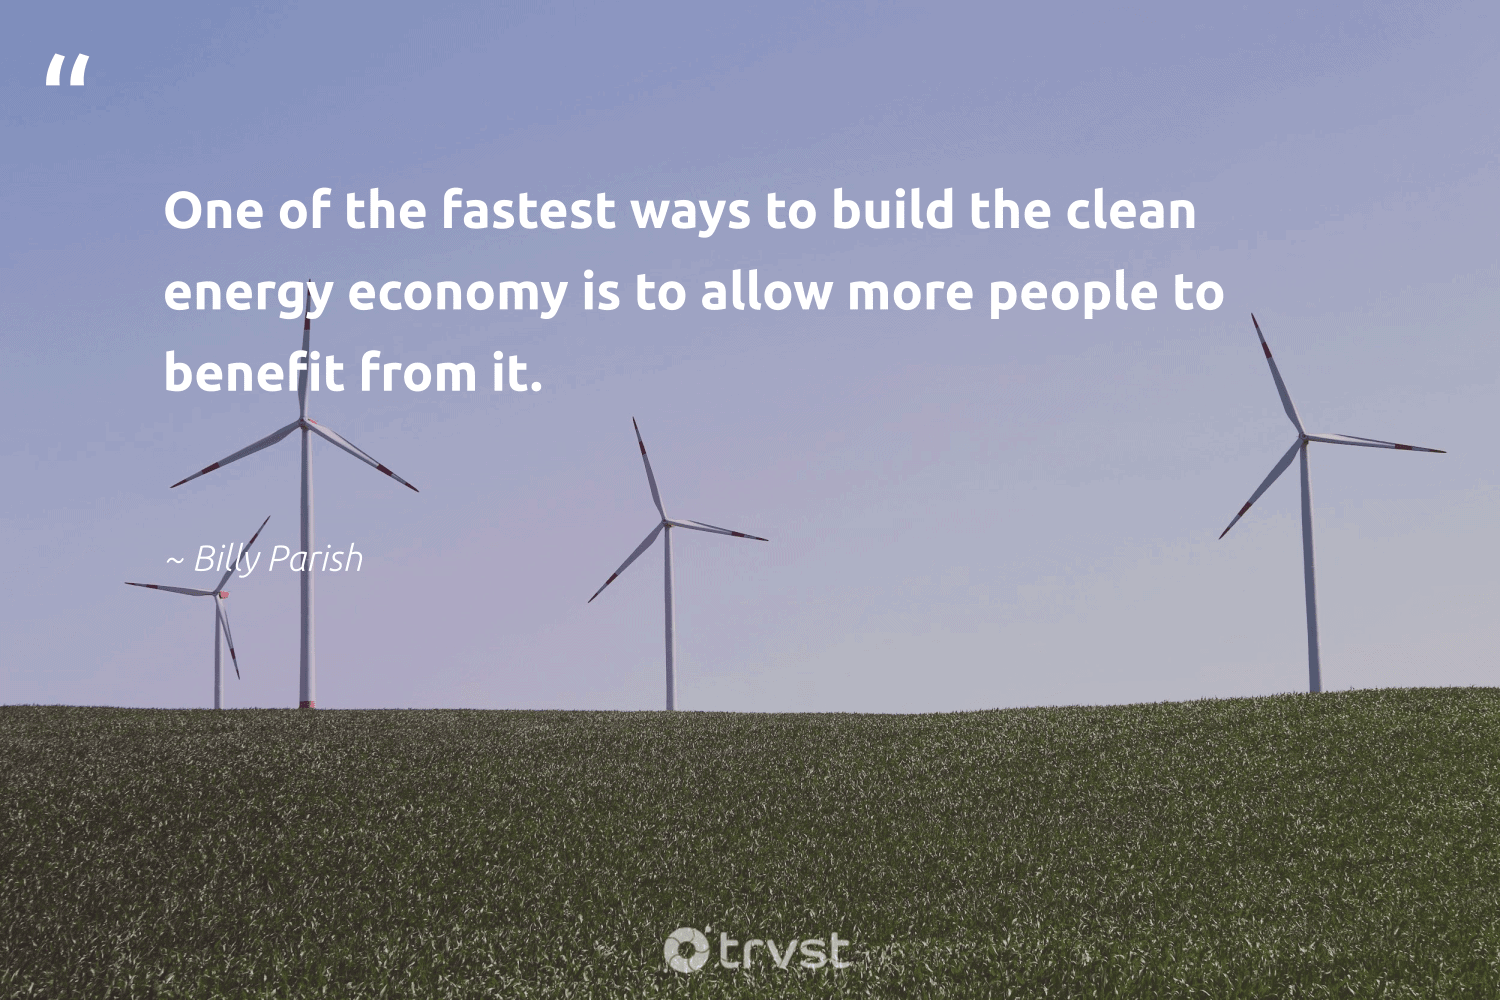 """""""One of the fastest ways to build the clean energy economy is to allow more people to benefit from it.""""  - Billy Parish #trvst #quotes #renewableenergy #energy #cleanenergy #environmentalist #sustainability #dotherightthing #renewable #environment #zerocarbon #planetearthfirst"""